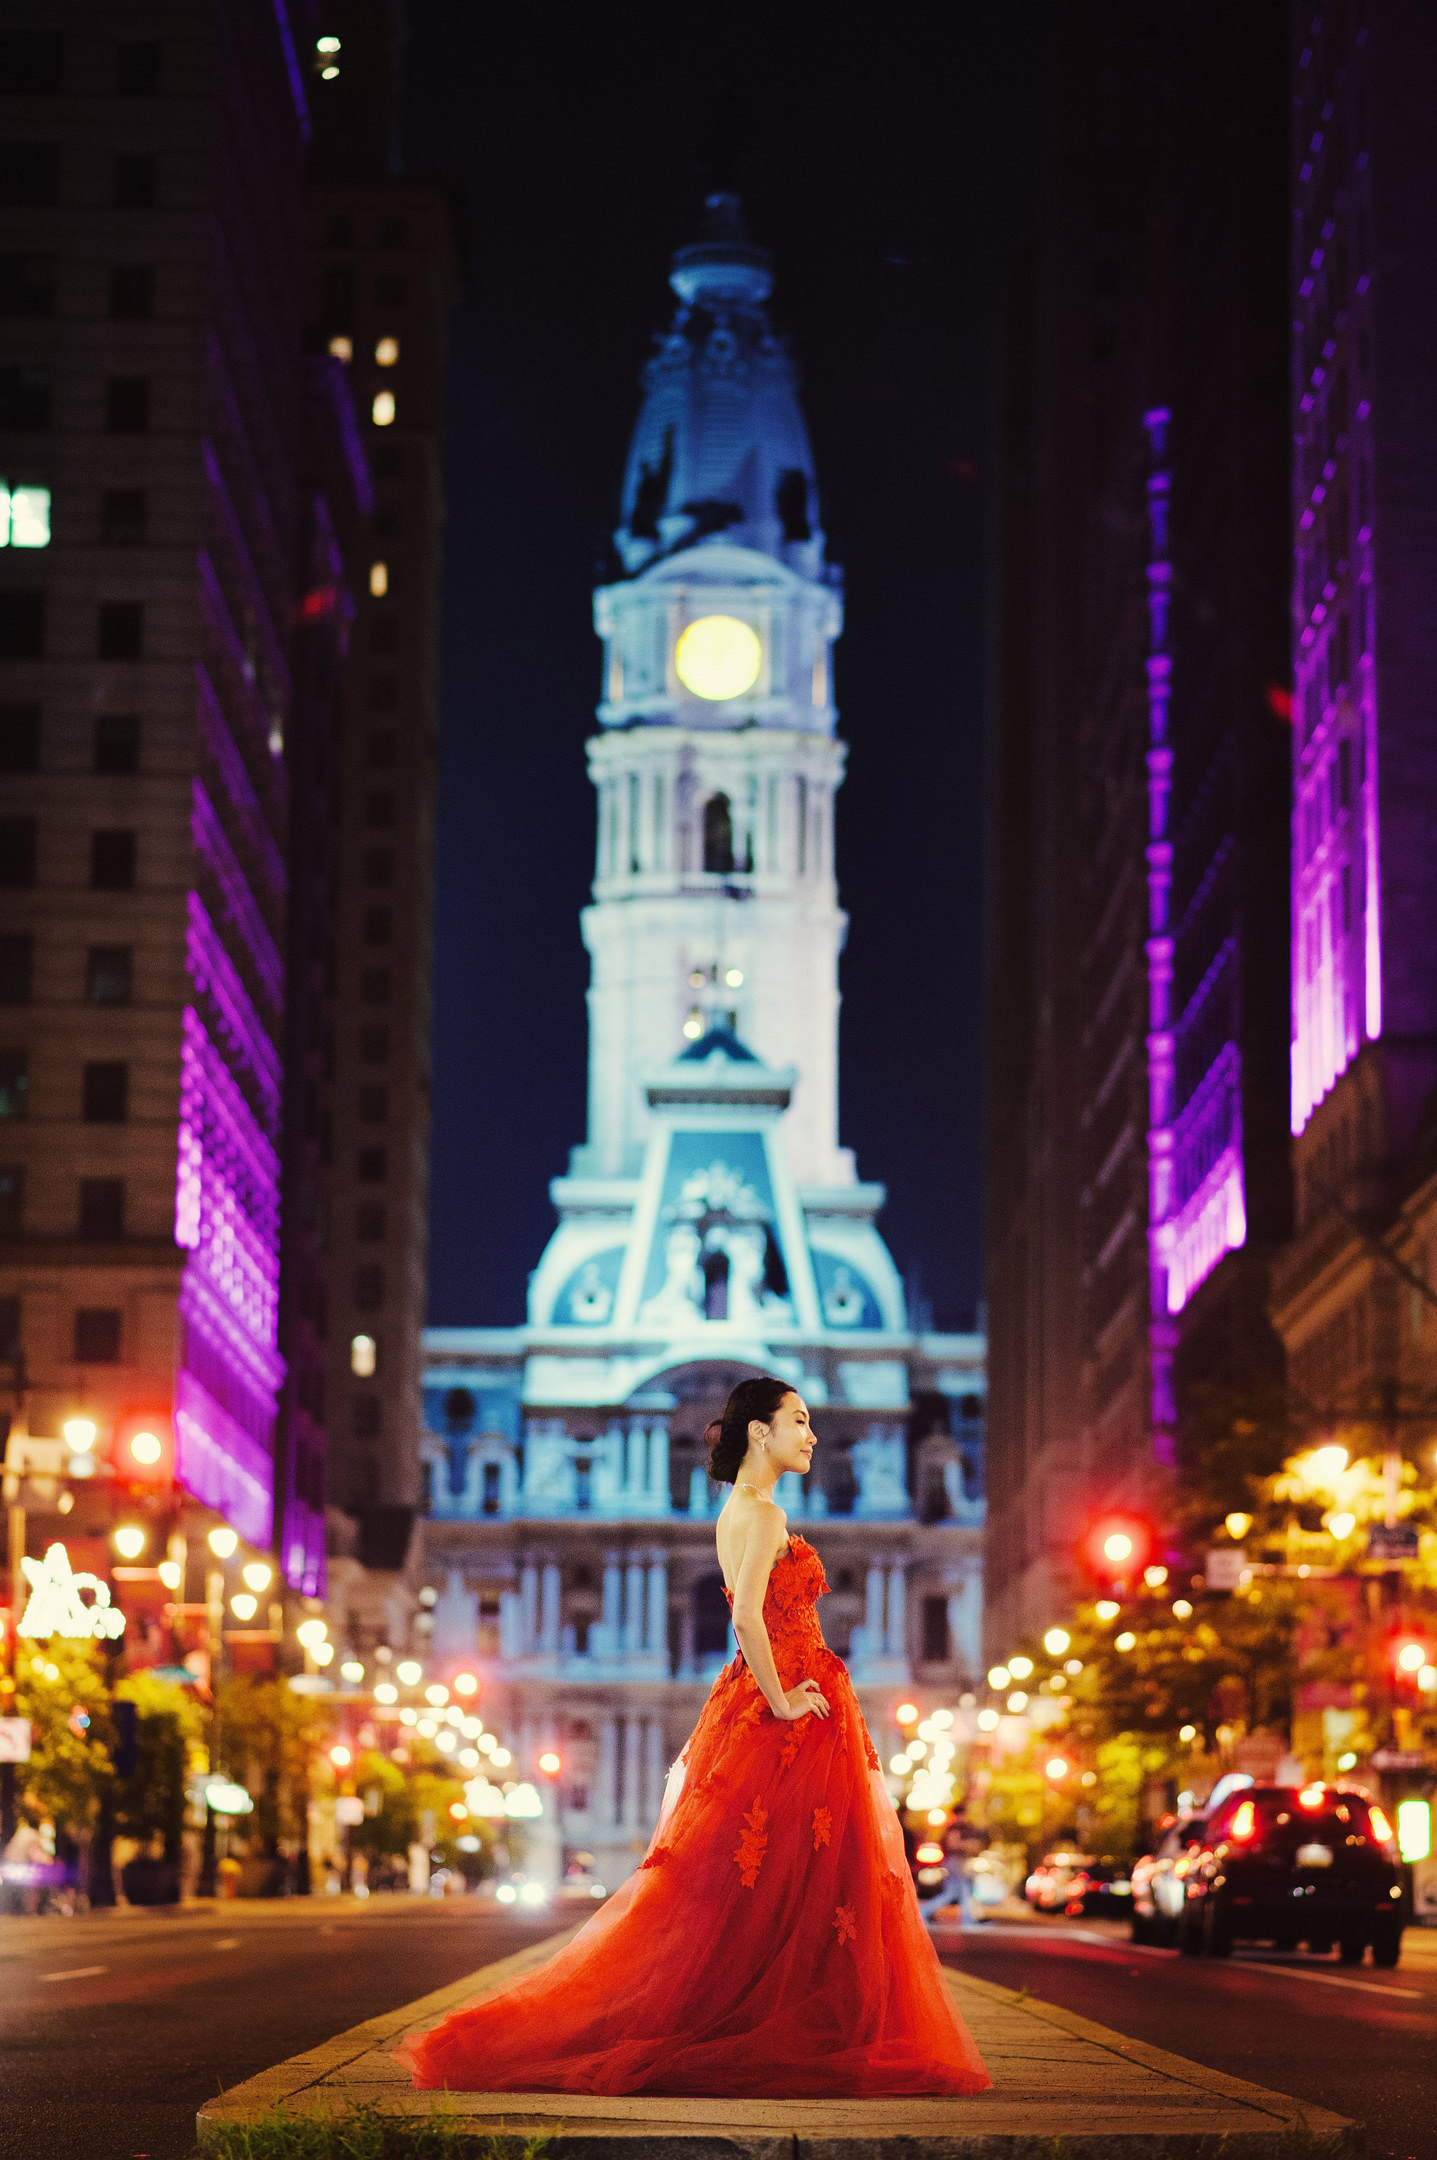 Chris_Hui_婚禮_婚紗照_pre_wedding_photography_best_008_Philadephia_city_hall_费城.jpg